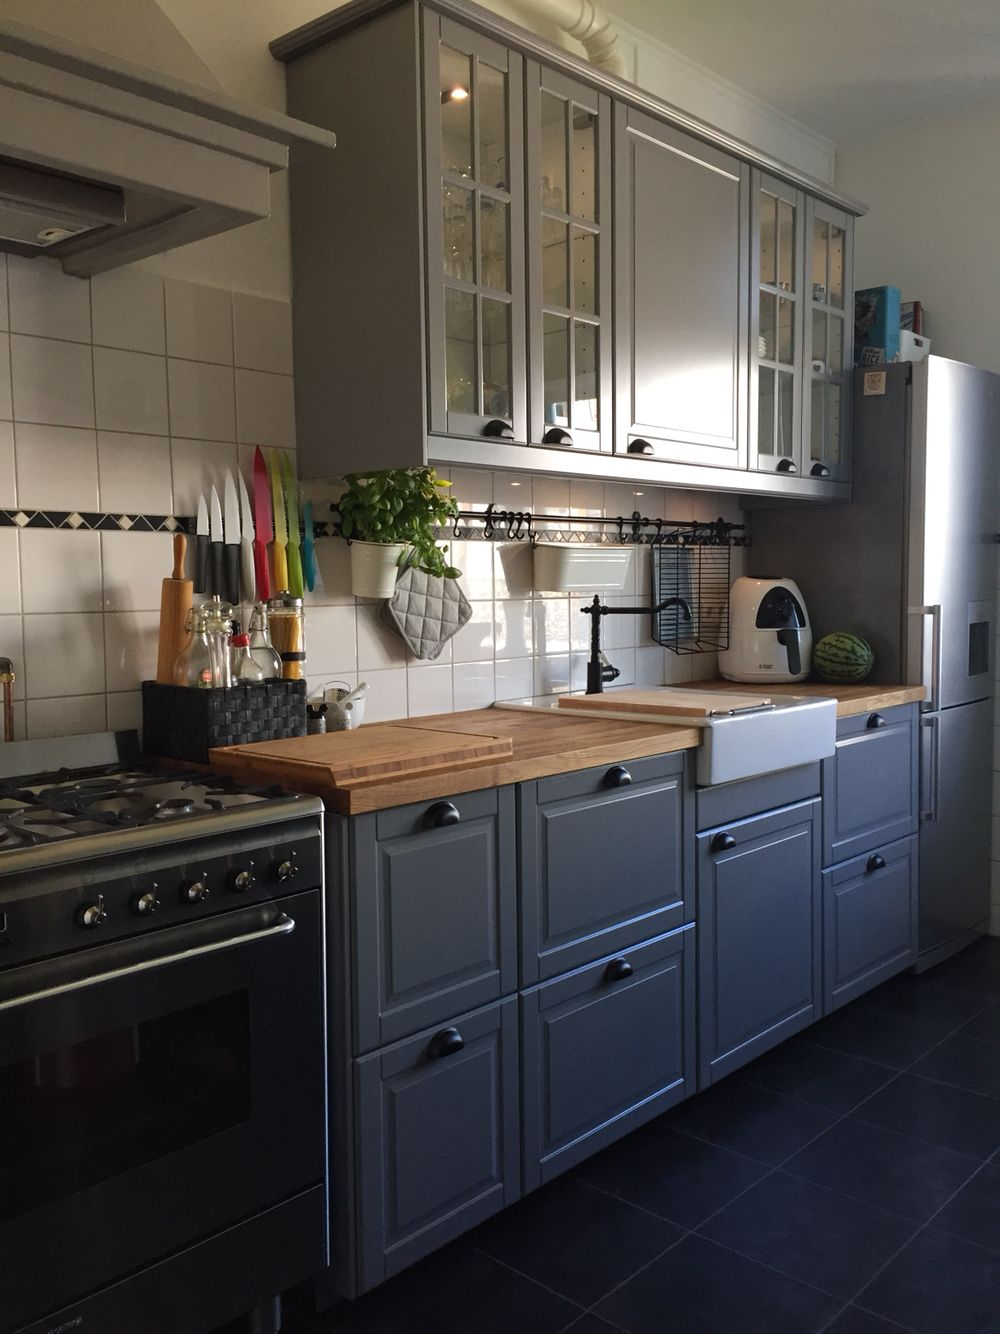 New kitchen Ikea bodbyn grey | kitchen | Pinterest | Cocinas ...